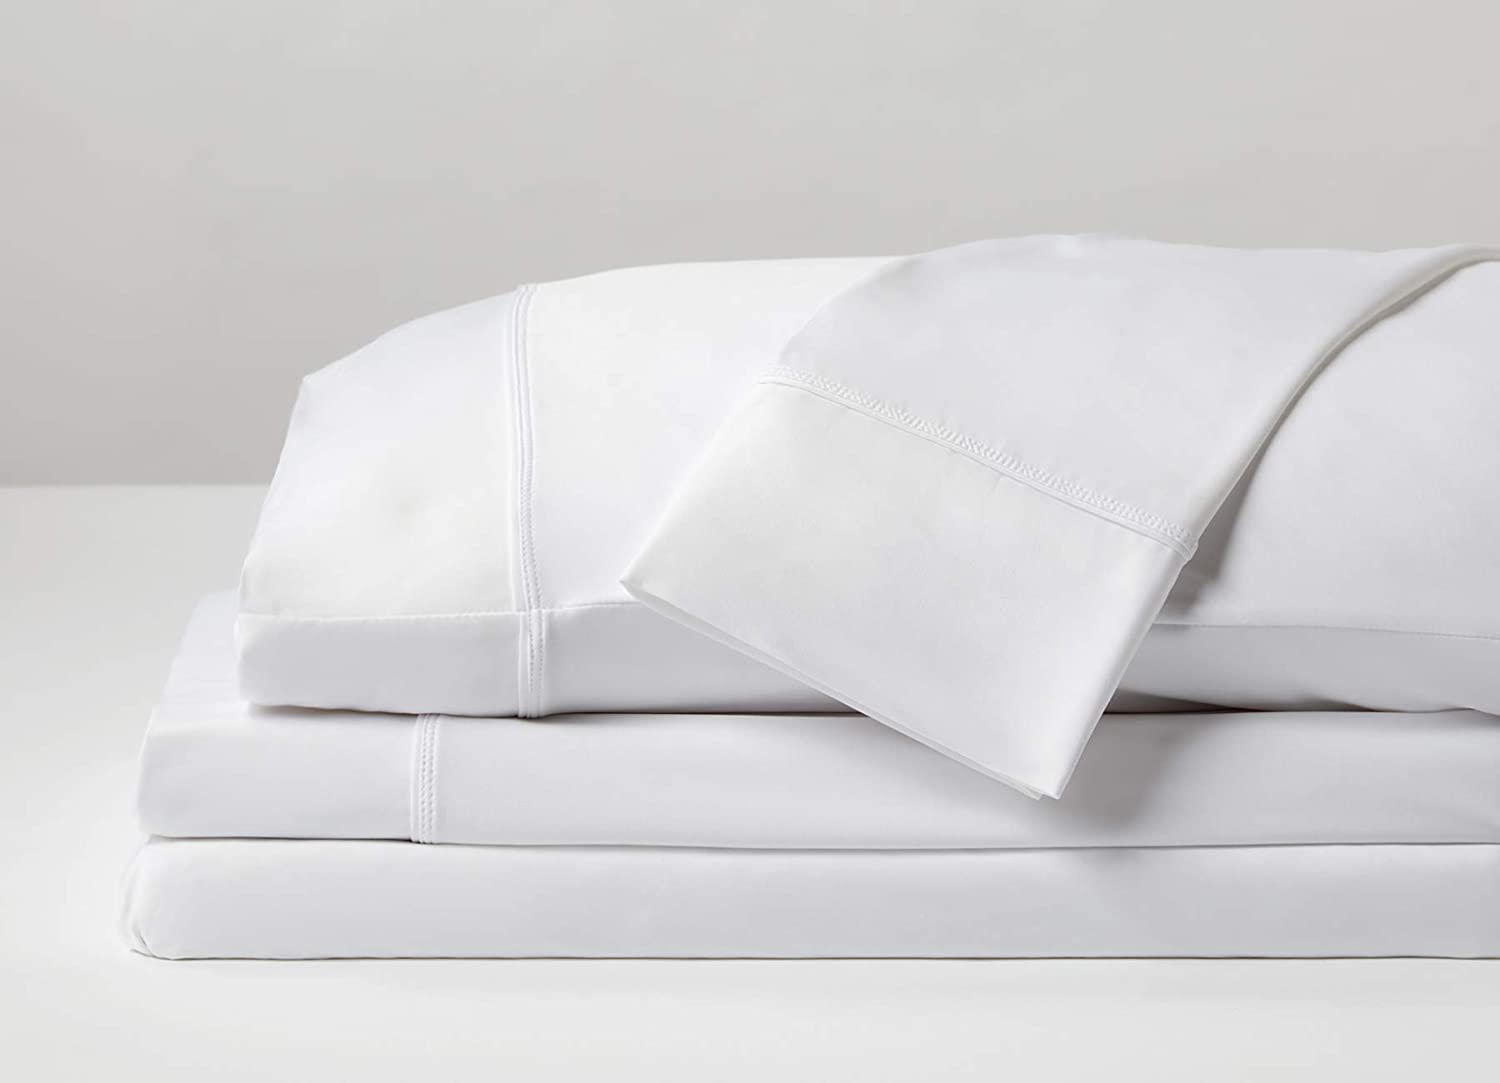 SHEEX - Original Performance Sheet Set with 2 Pillowcases, Ulta-Soft Fabric Transfers Heat and Breathes Better Than Traditional Cotton - Bright White, Queen